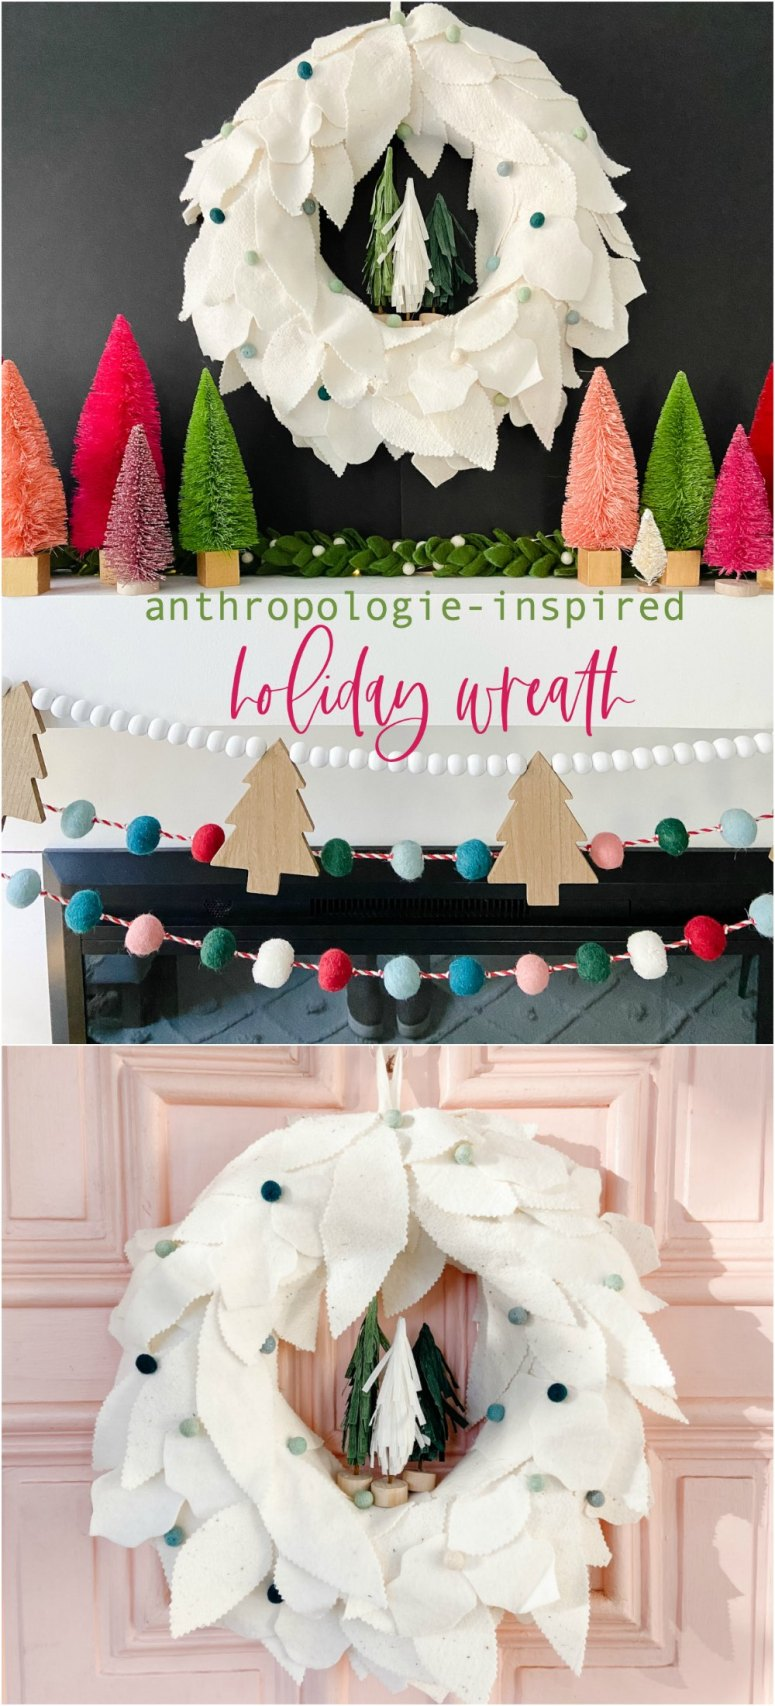 Anthropologie-inspired felt holiday leaf wreath